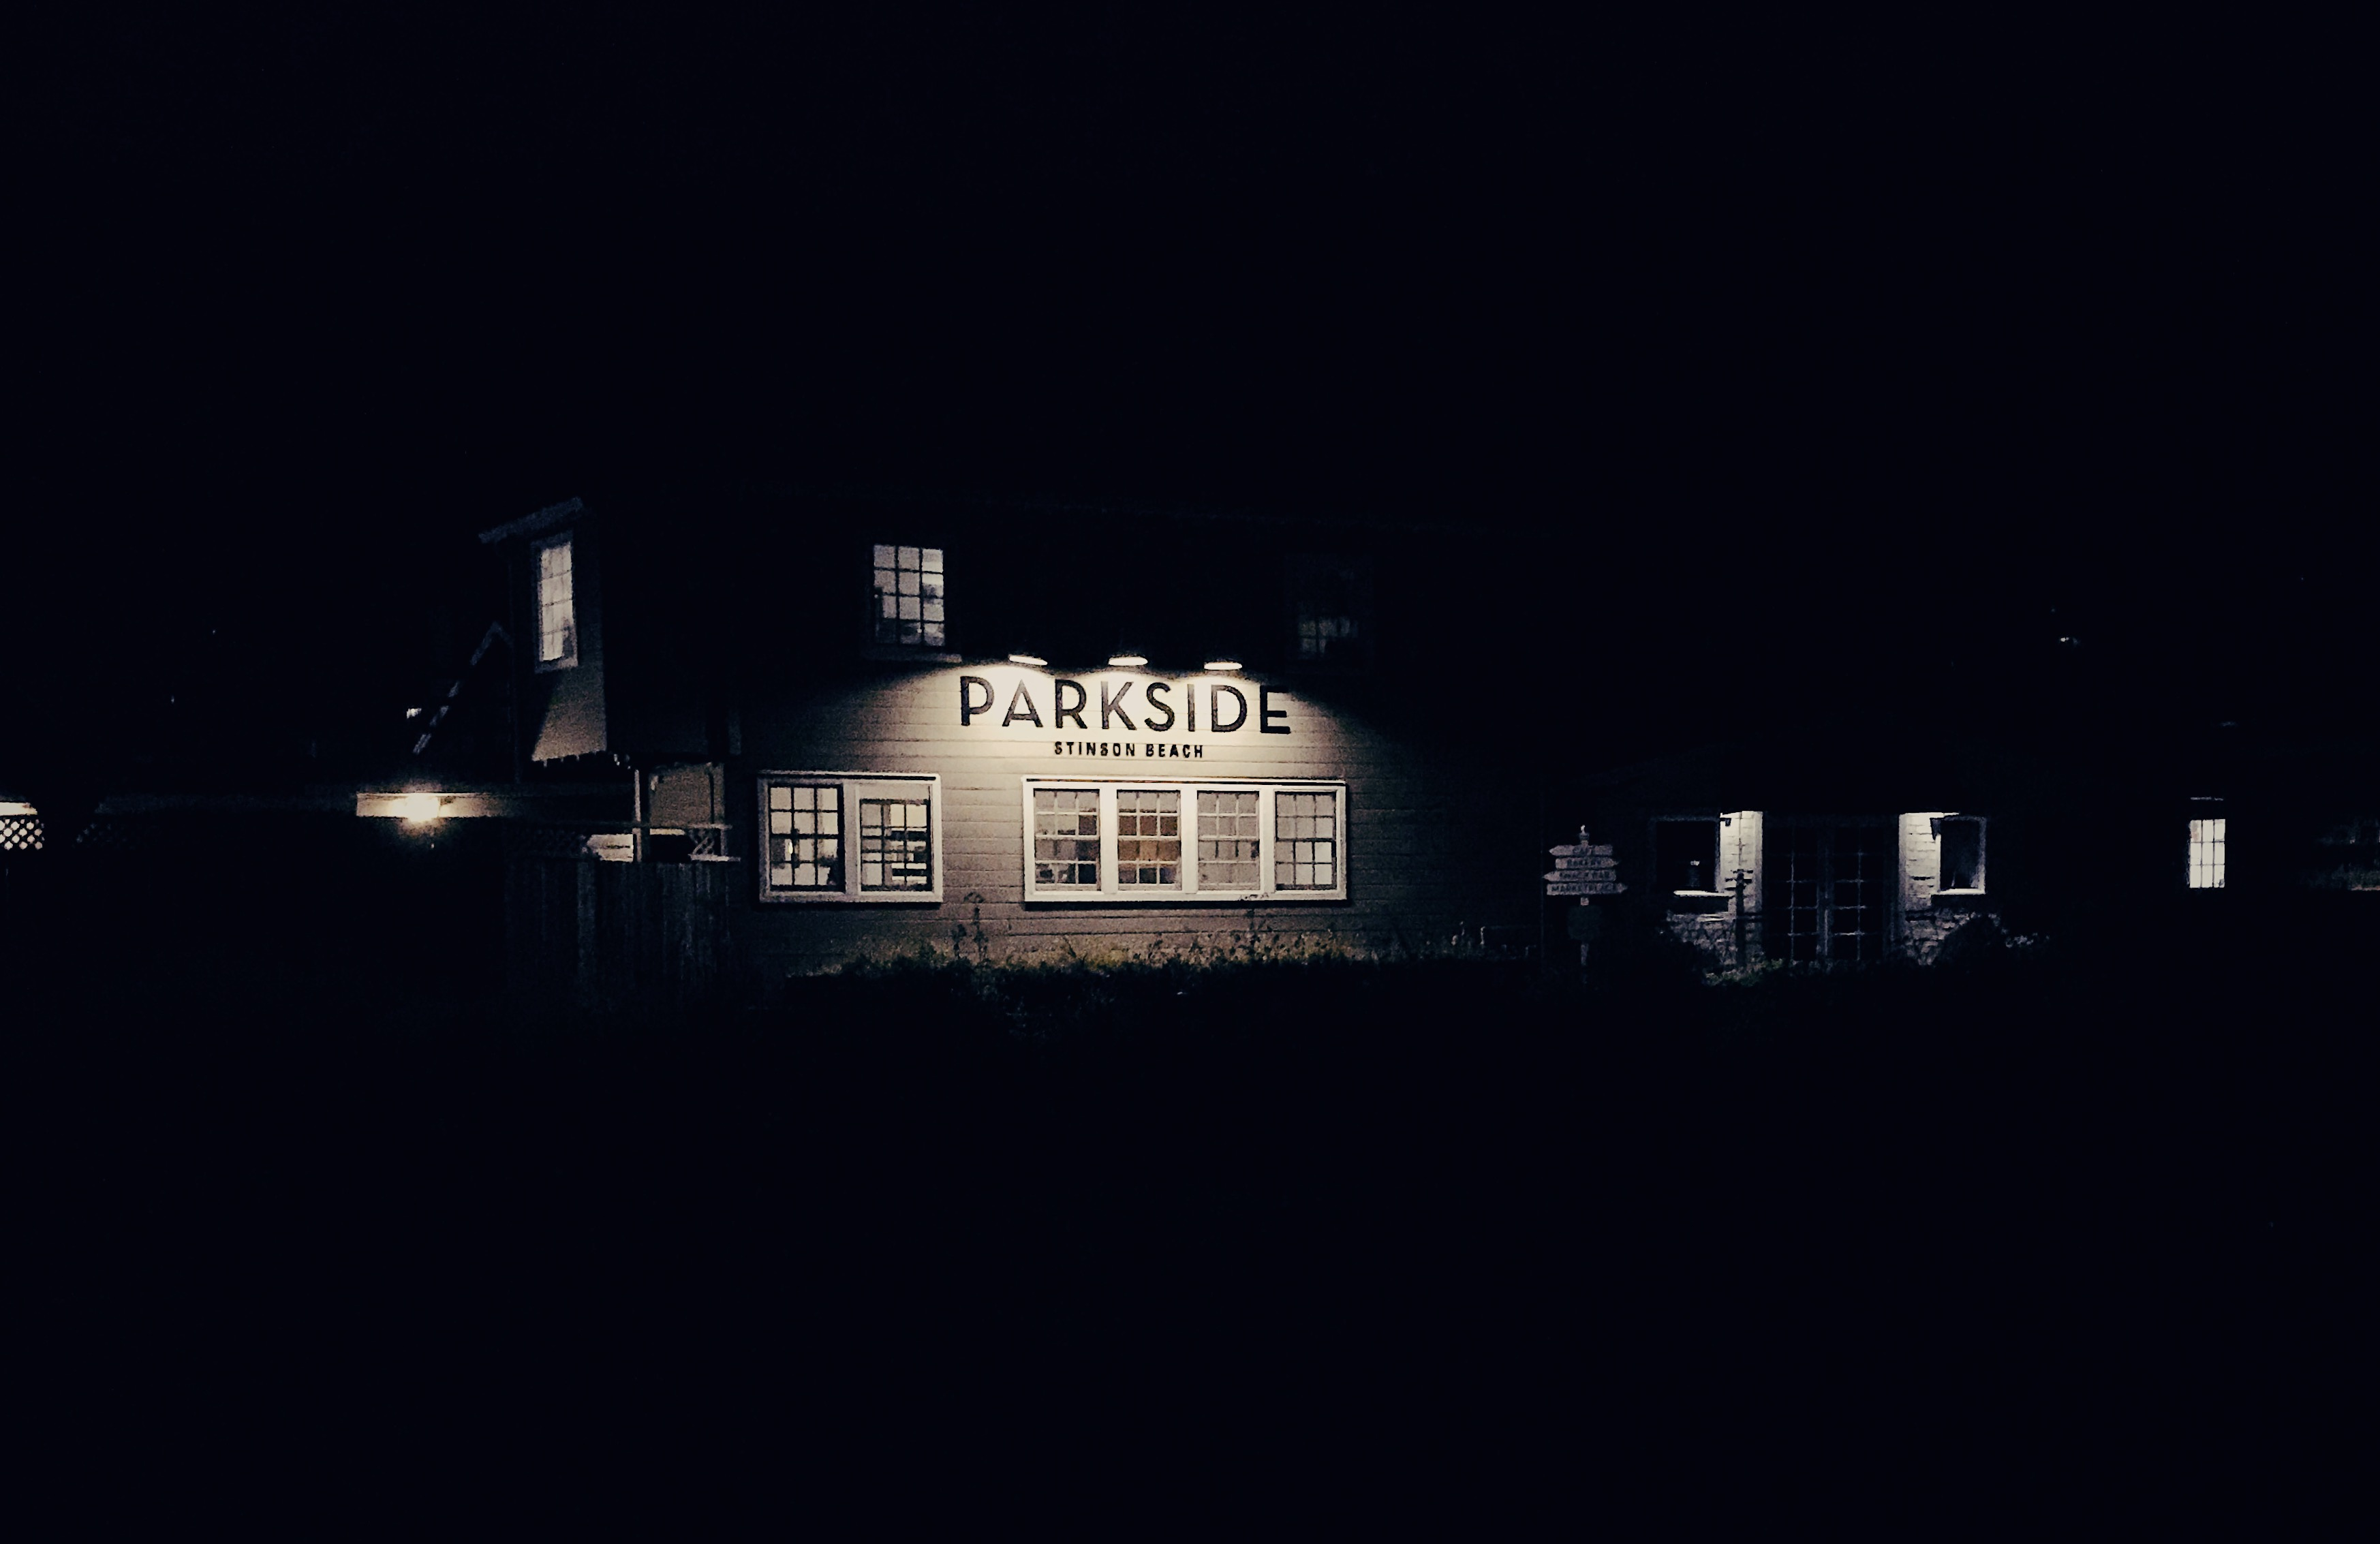 A night time photograph of the Parkside Grill in Stinson Beach, CA.